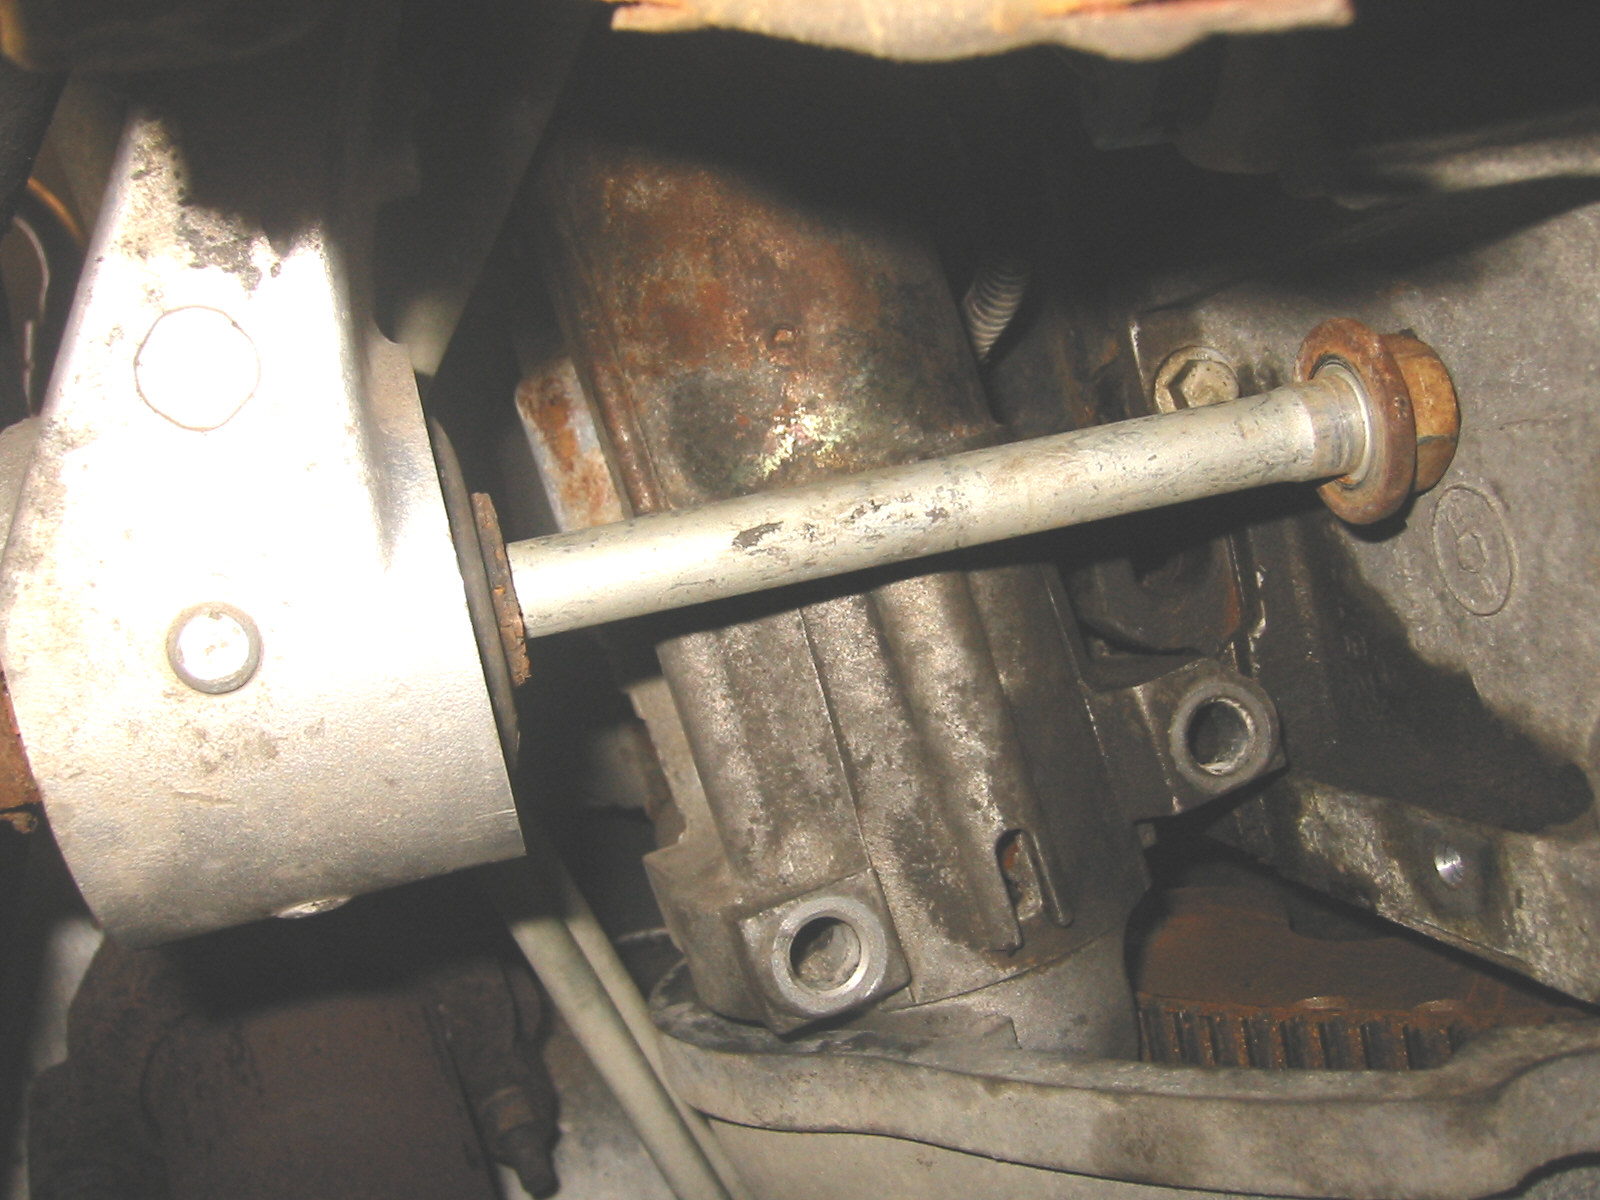 I Am Attempting To Replace The Starter Motor In My 2003 Gmc Yukon Diagram Here Are Three Photos From Under You Can See Bolt Is Too Long Remove Or Reposition Make Room Drop Disconnected